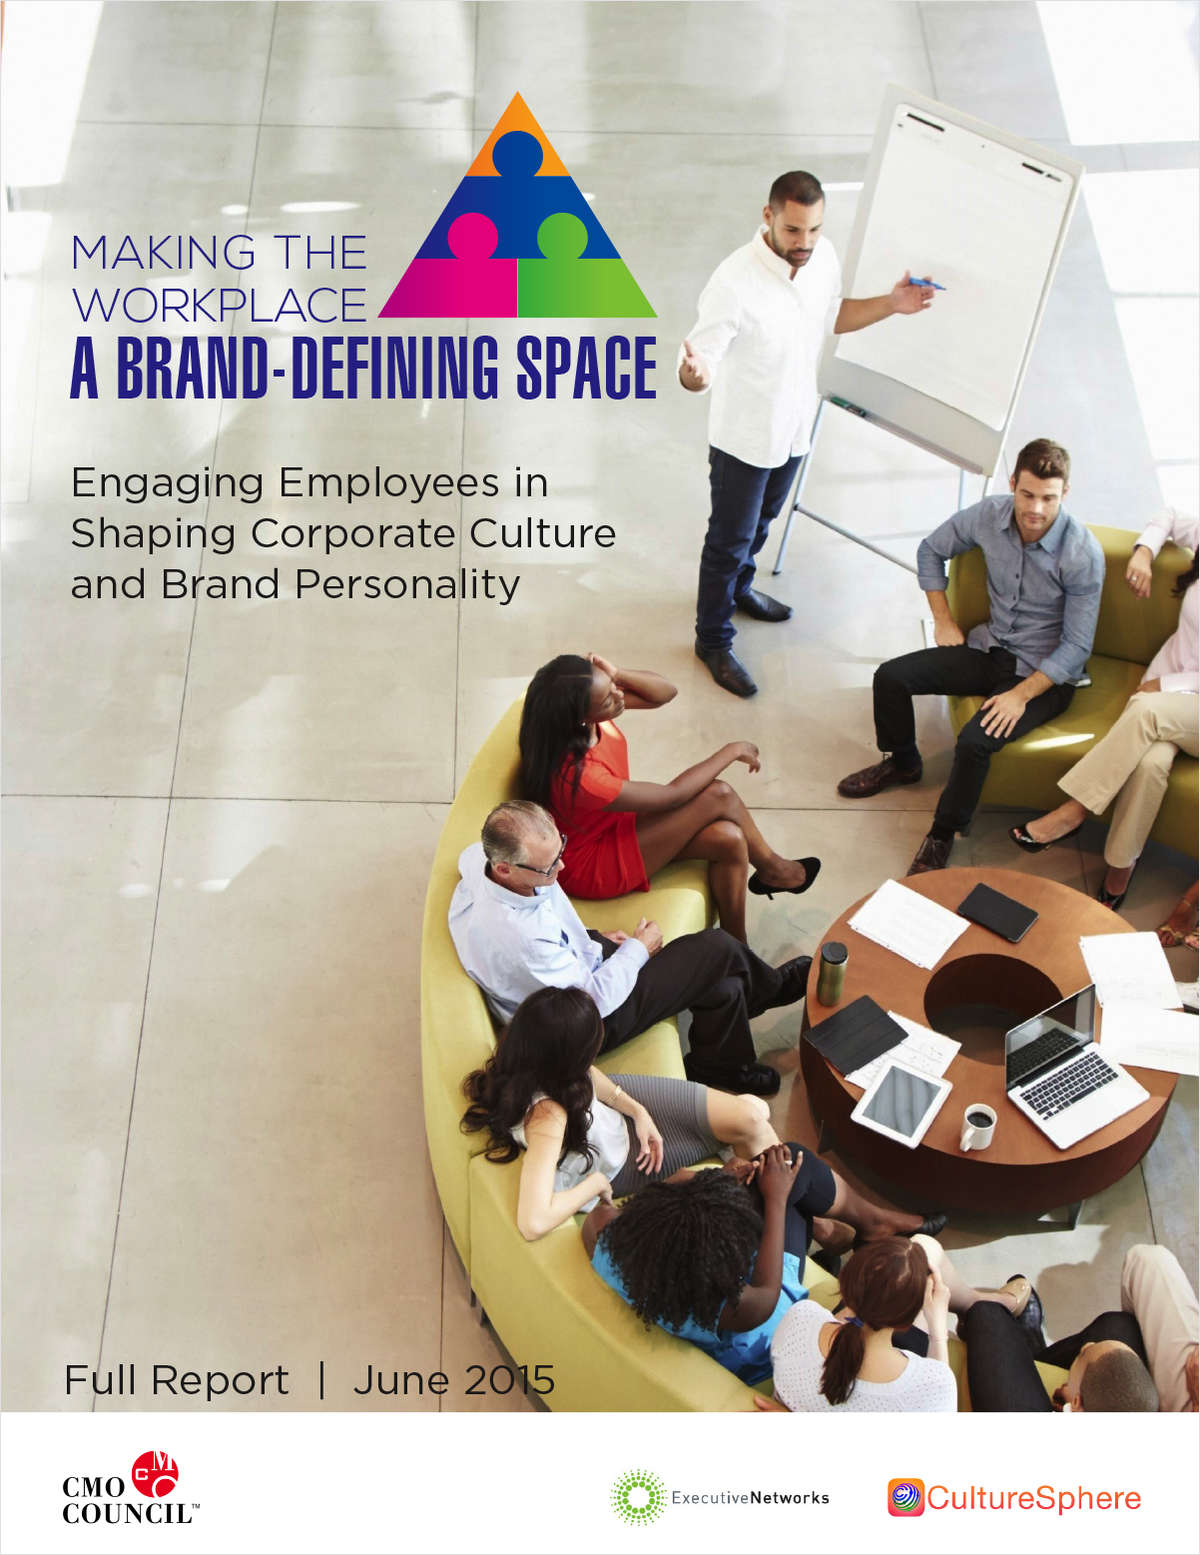 Making the Workplace a Brand-Defining Space